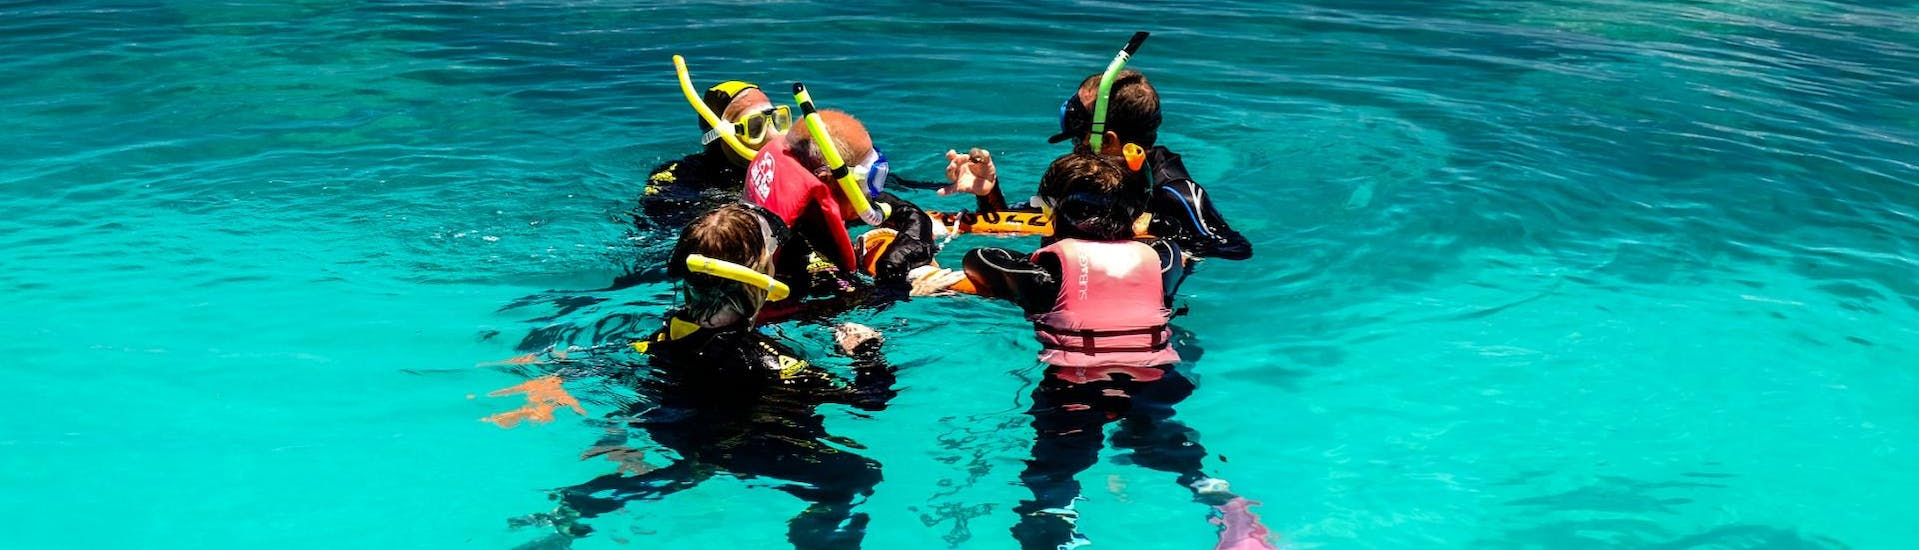 During the Snorkeling excursion in the Great Barrier Reef from Cairns, a guide from Ocean Spirit Cruises is briefing a group of snorkelers.